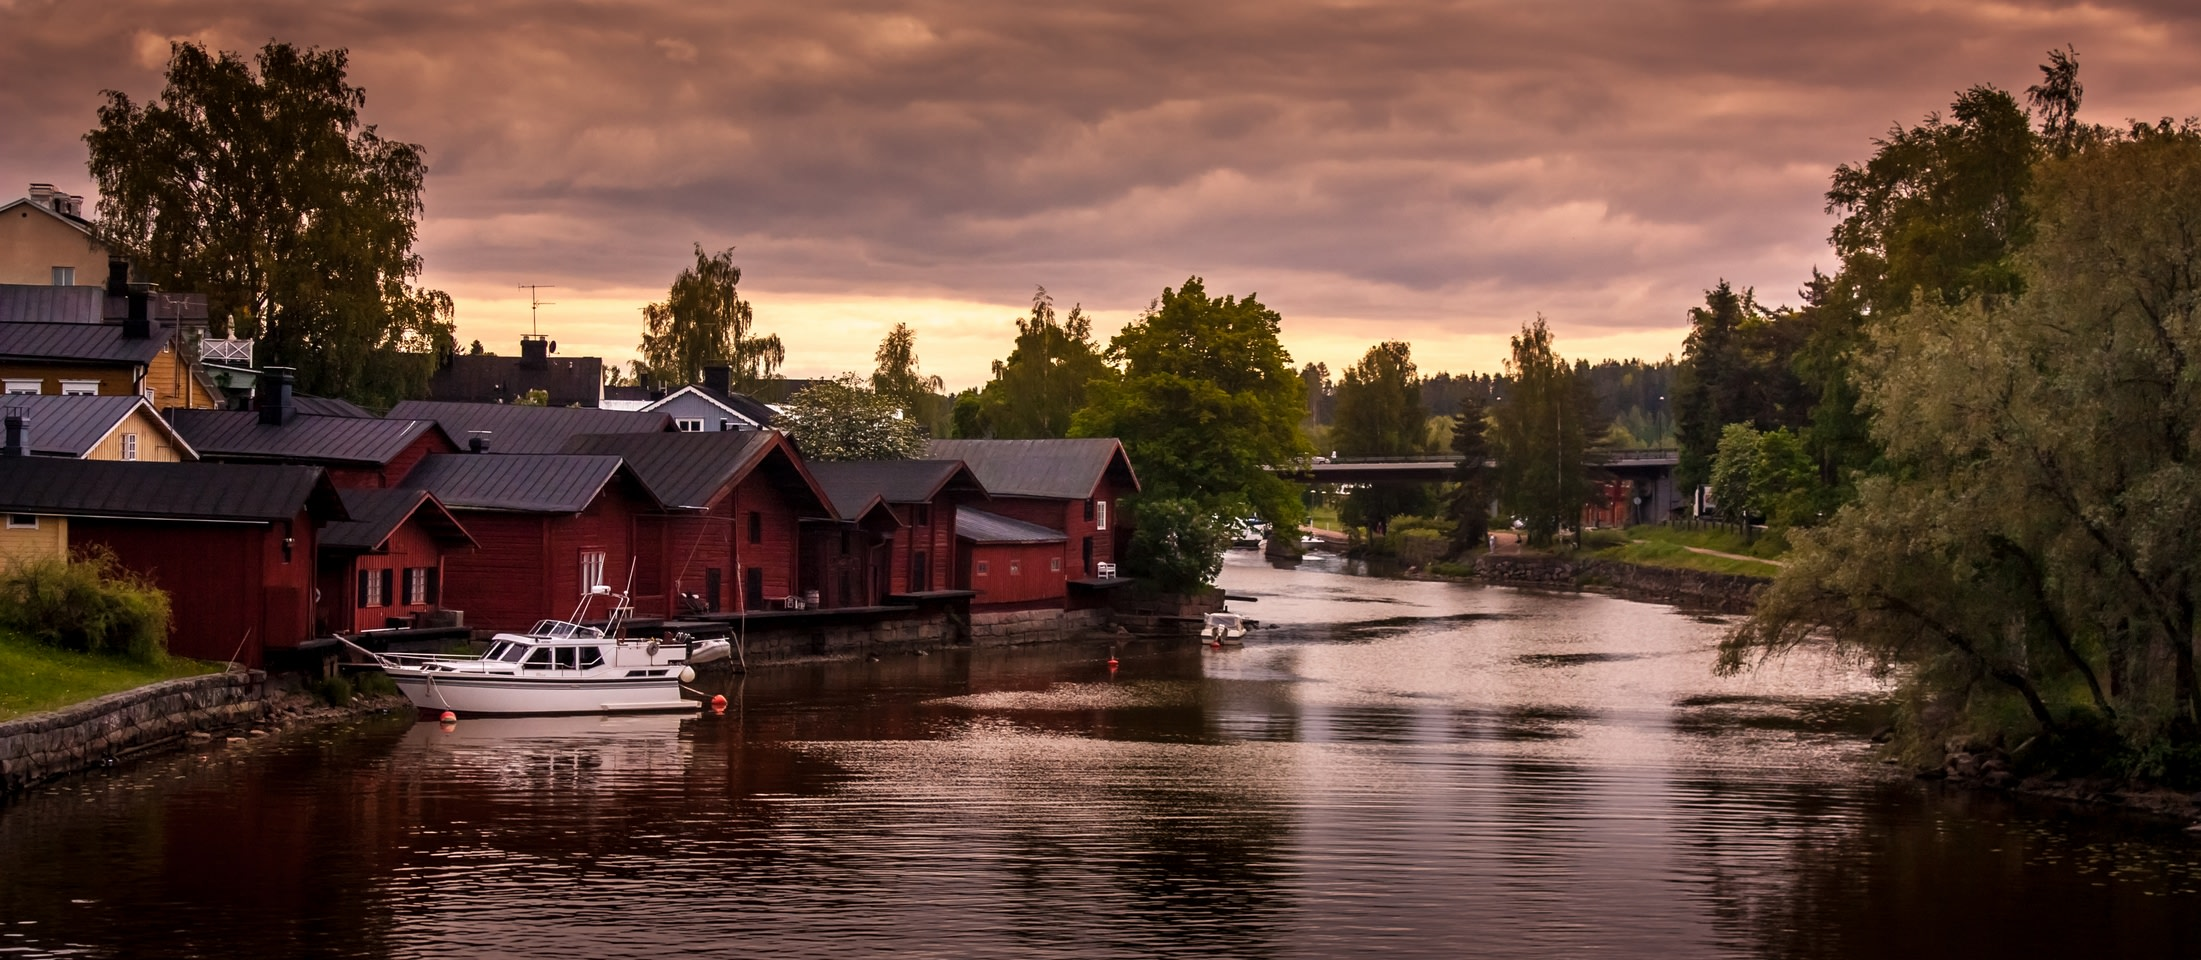 Take pictures of the iconic red houses in Porvoo